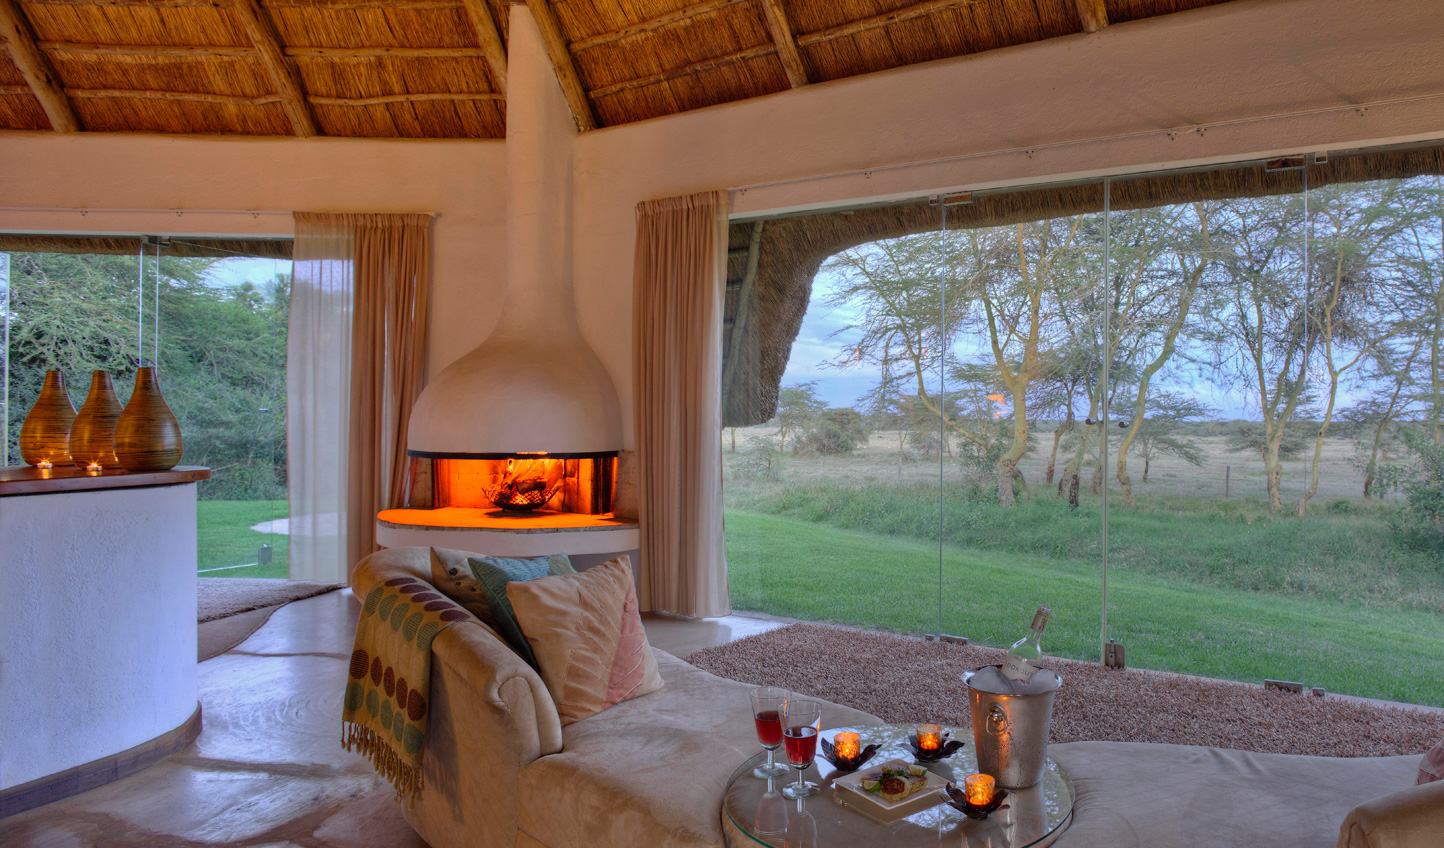 See large herds of rhinos from your room